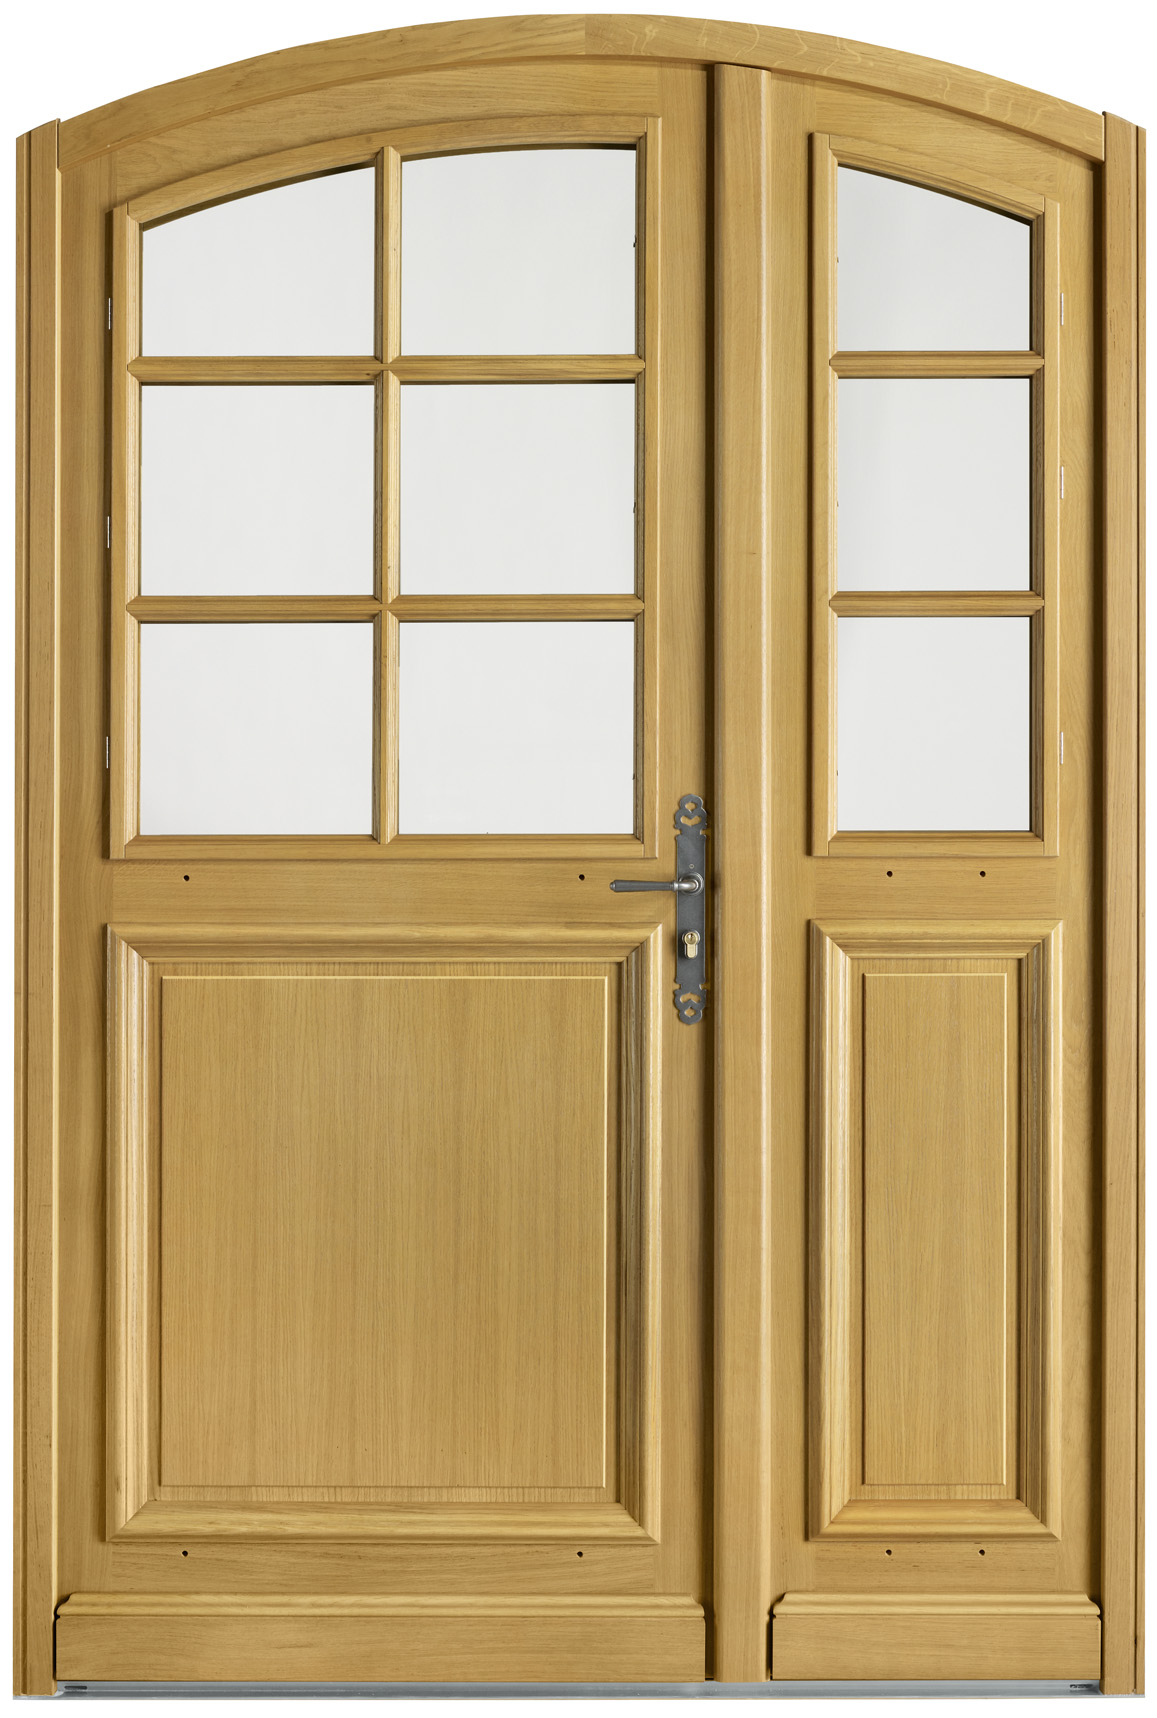 Portes d 39 entr e bois evenos swao for Porte interieur bois double battant